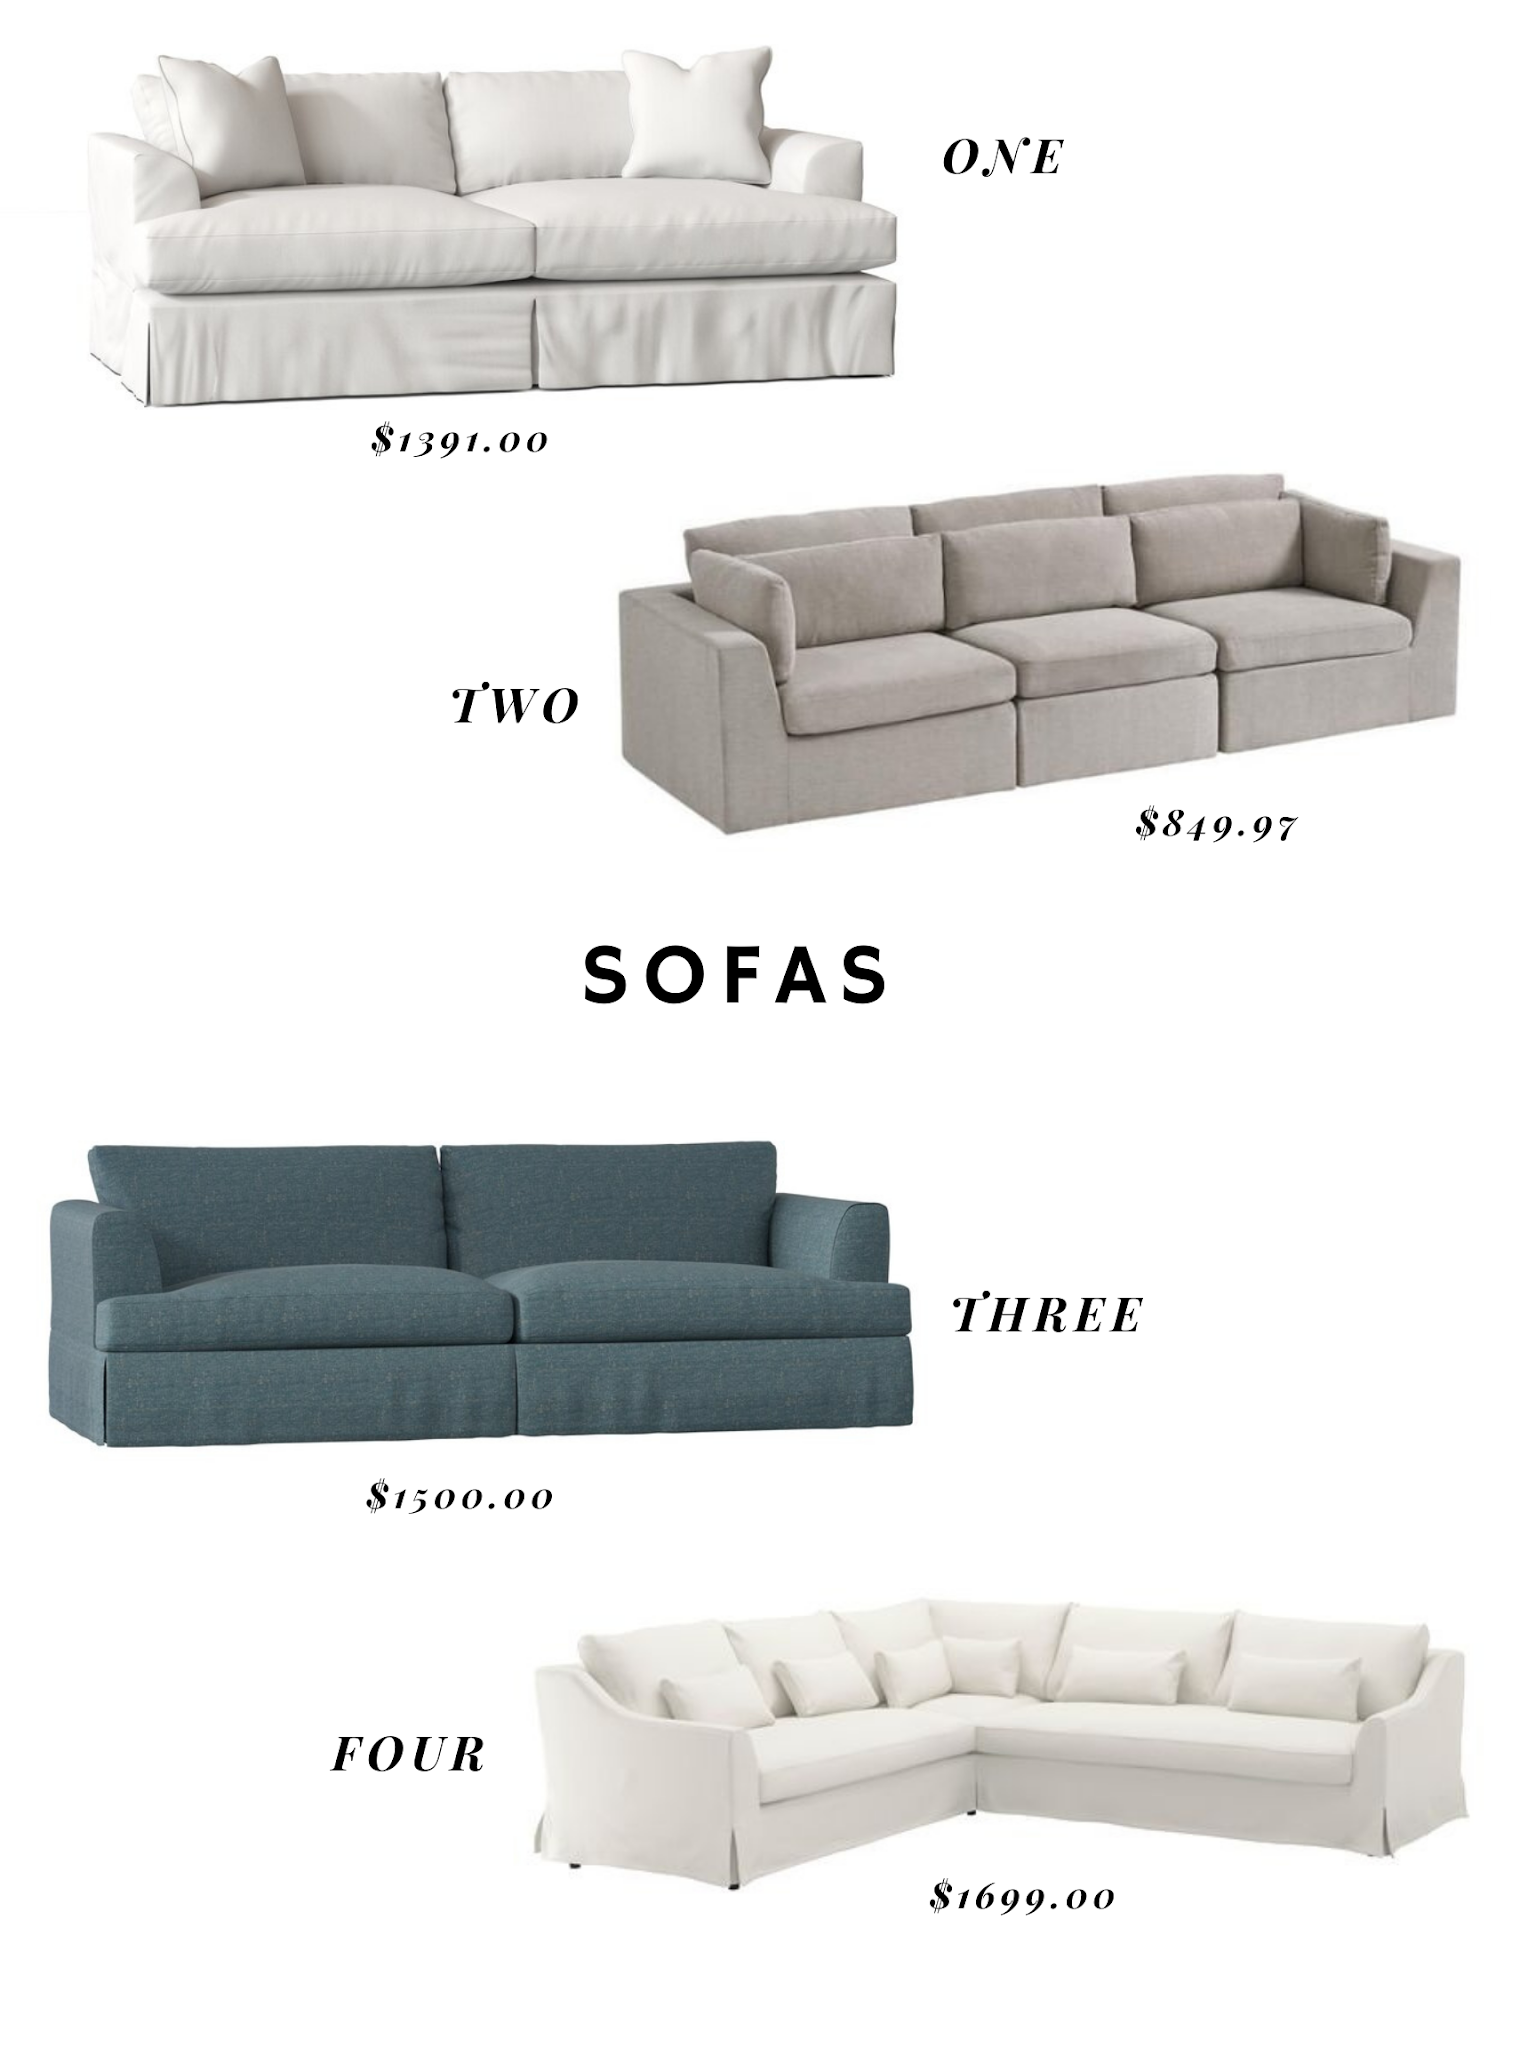 SOFA OPTIONS FOR THE MEDIA ROOM / PLAYROOM / FAMILY ROOM